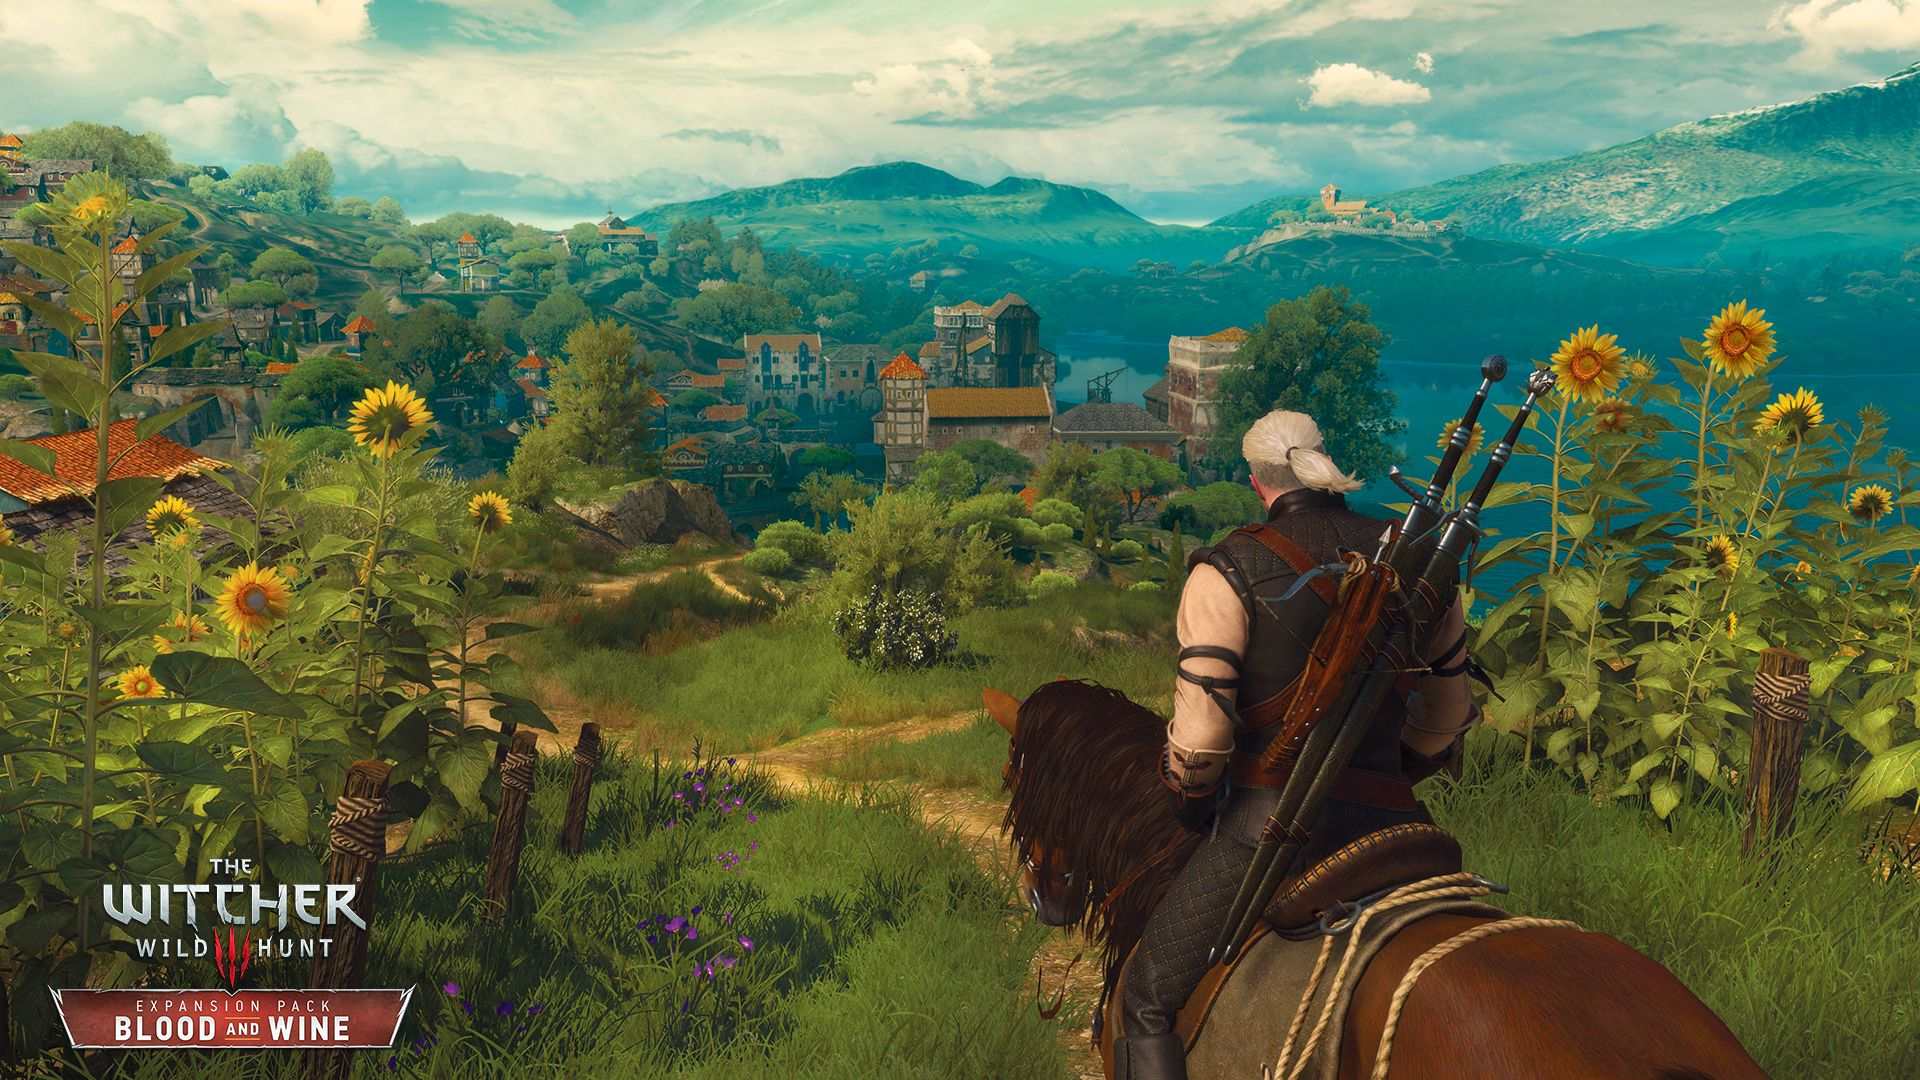 The Witcher 3: Blood and Wine - Bovine Blues Witcher